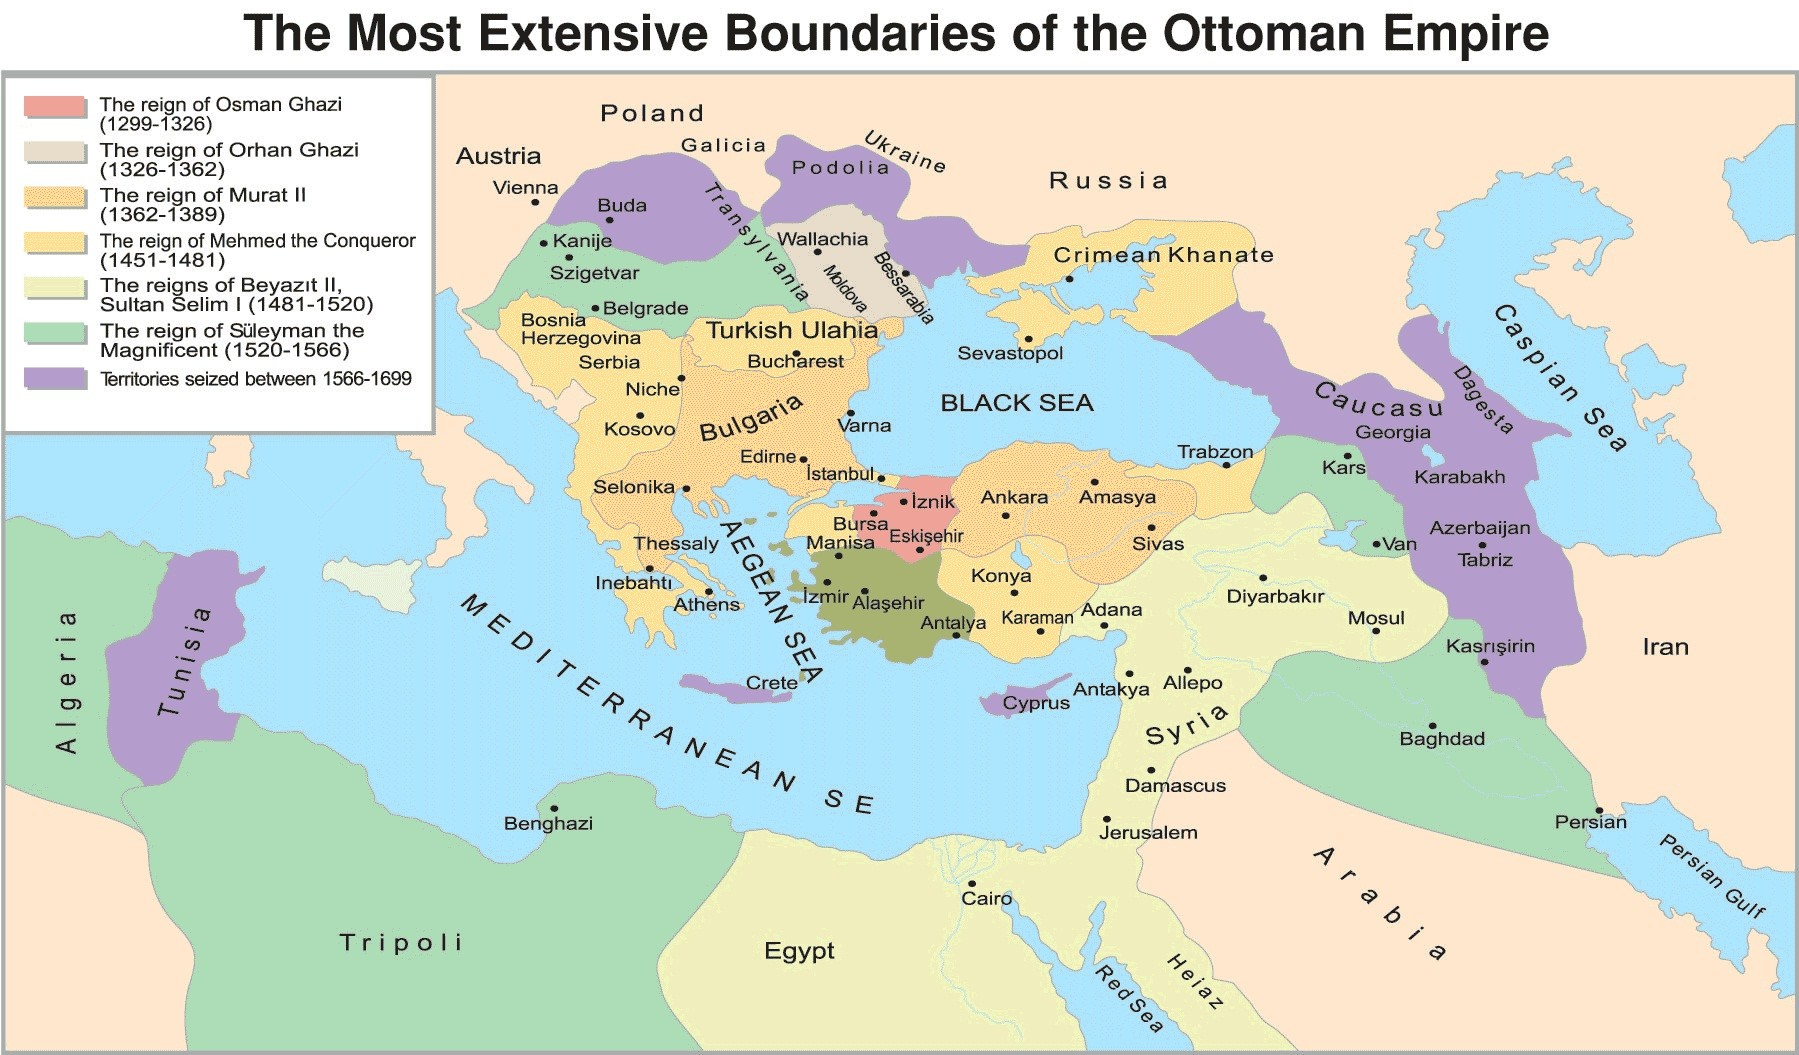 "the rise of the ottoman empire essay The origins of the ottoman empire is difficult to trace, as the beginnings of the ottomans were barely documented (pitman) however, it is known that the empire existed as a result of the seljuk turkish kingdom in the latter part of the 13th century (""empire"")."